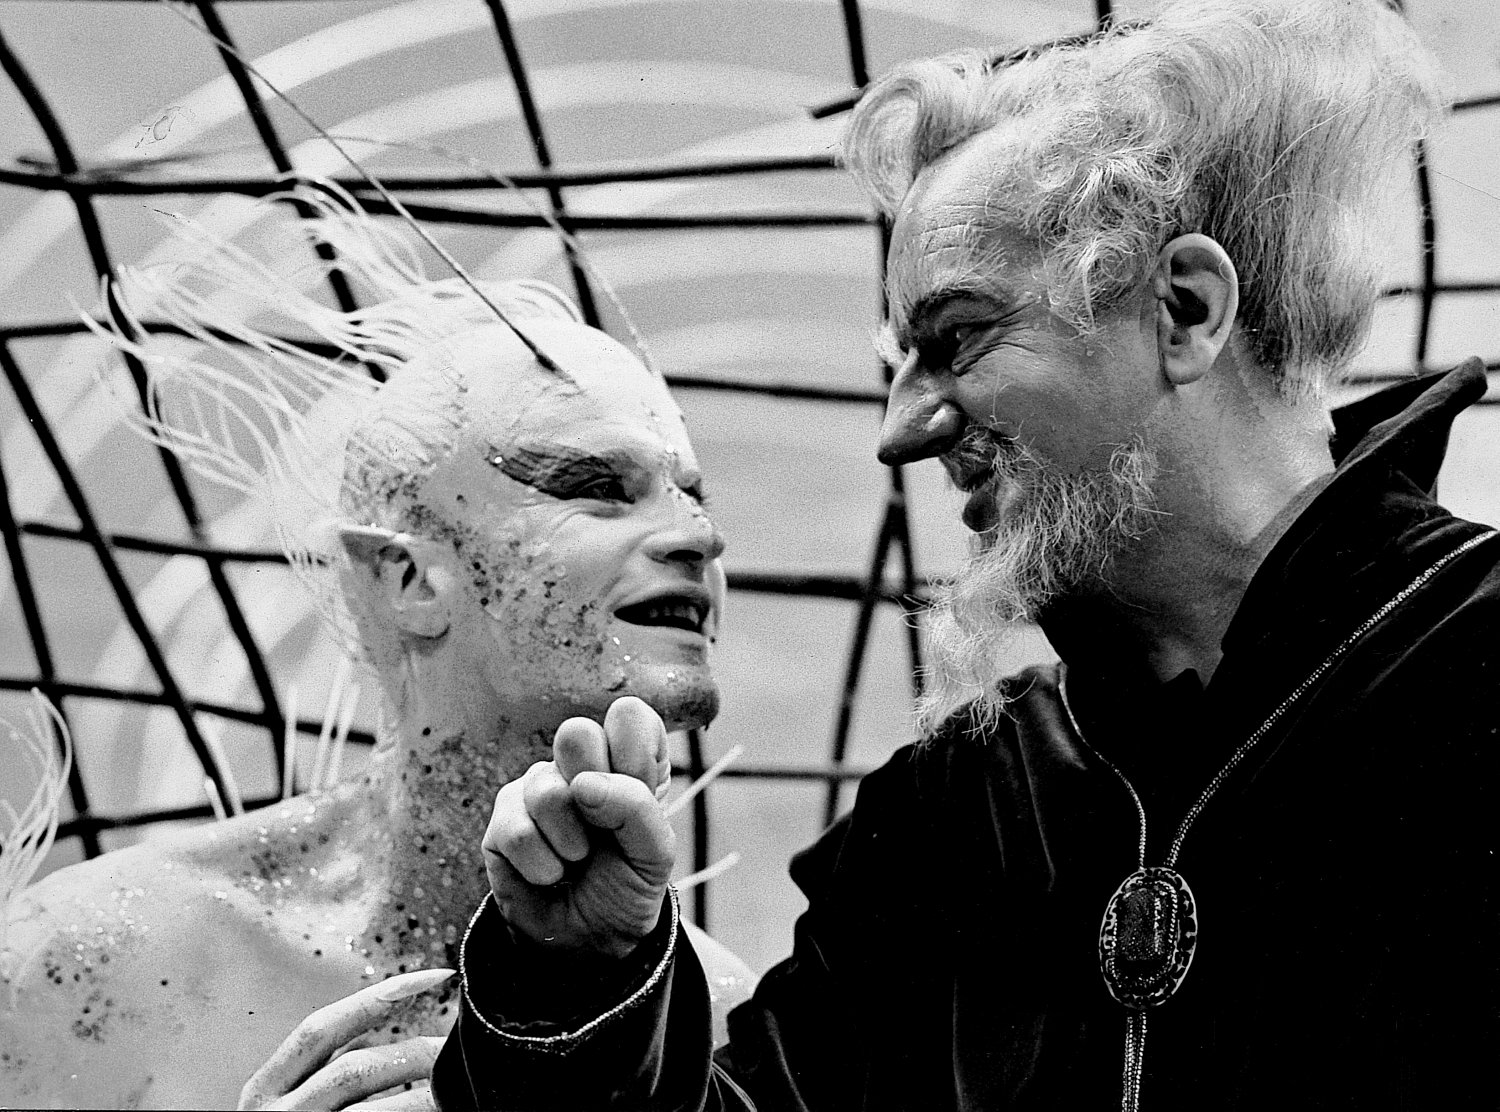 - Roddy McDowall as Ariel and Maurice Evans as Prospero  in Shakespeare's <I>The Tempest</I> - Shakespeare - The Tempest - Richard Burton - Maurice Evans - Lee Remick - Roddy McDowall - NBC Television - Hallmark Hall of Fame - Tony Karp, design, art, photography, techno-impressionist, techno-impressionism, aerial photography , drone , drones , dji , mavic pro , video , 3D printing - Books -